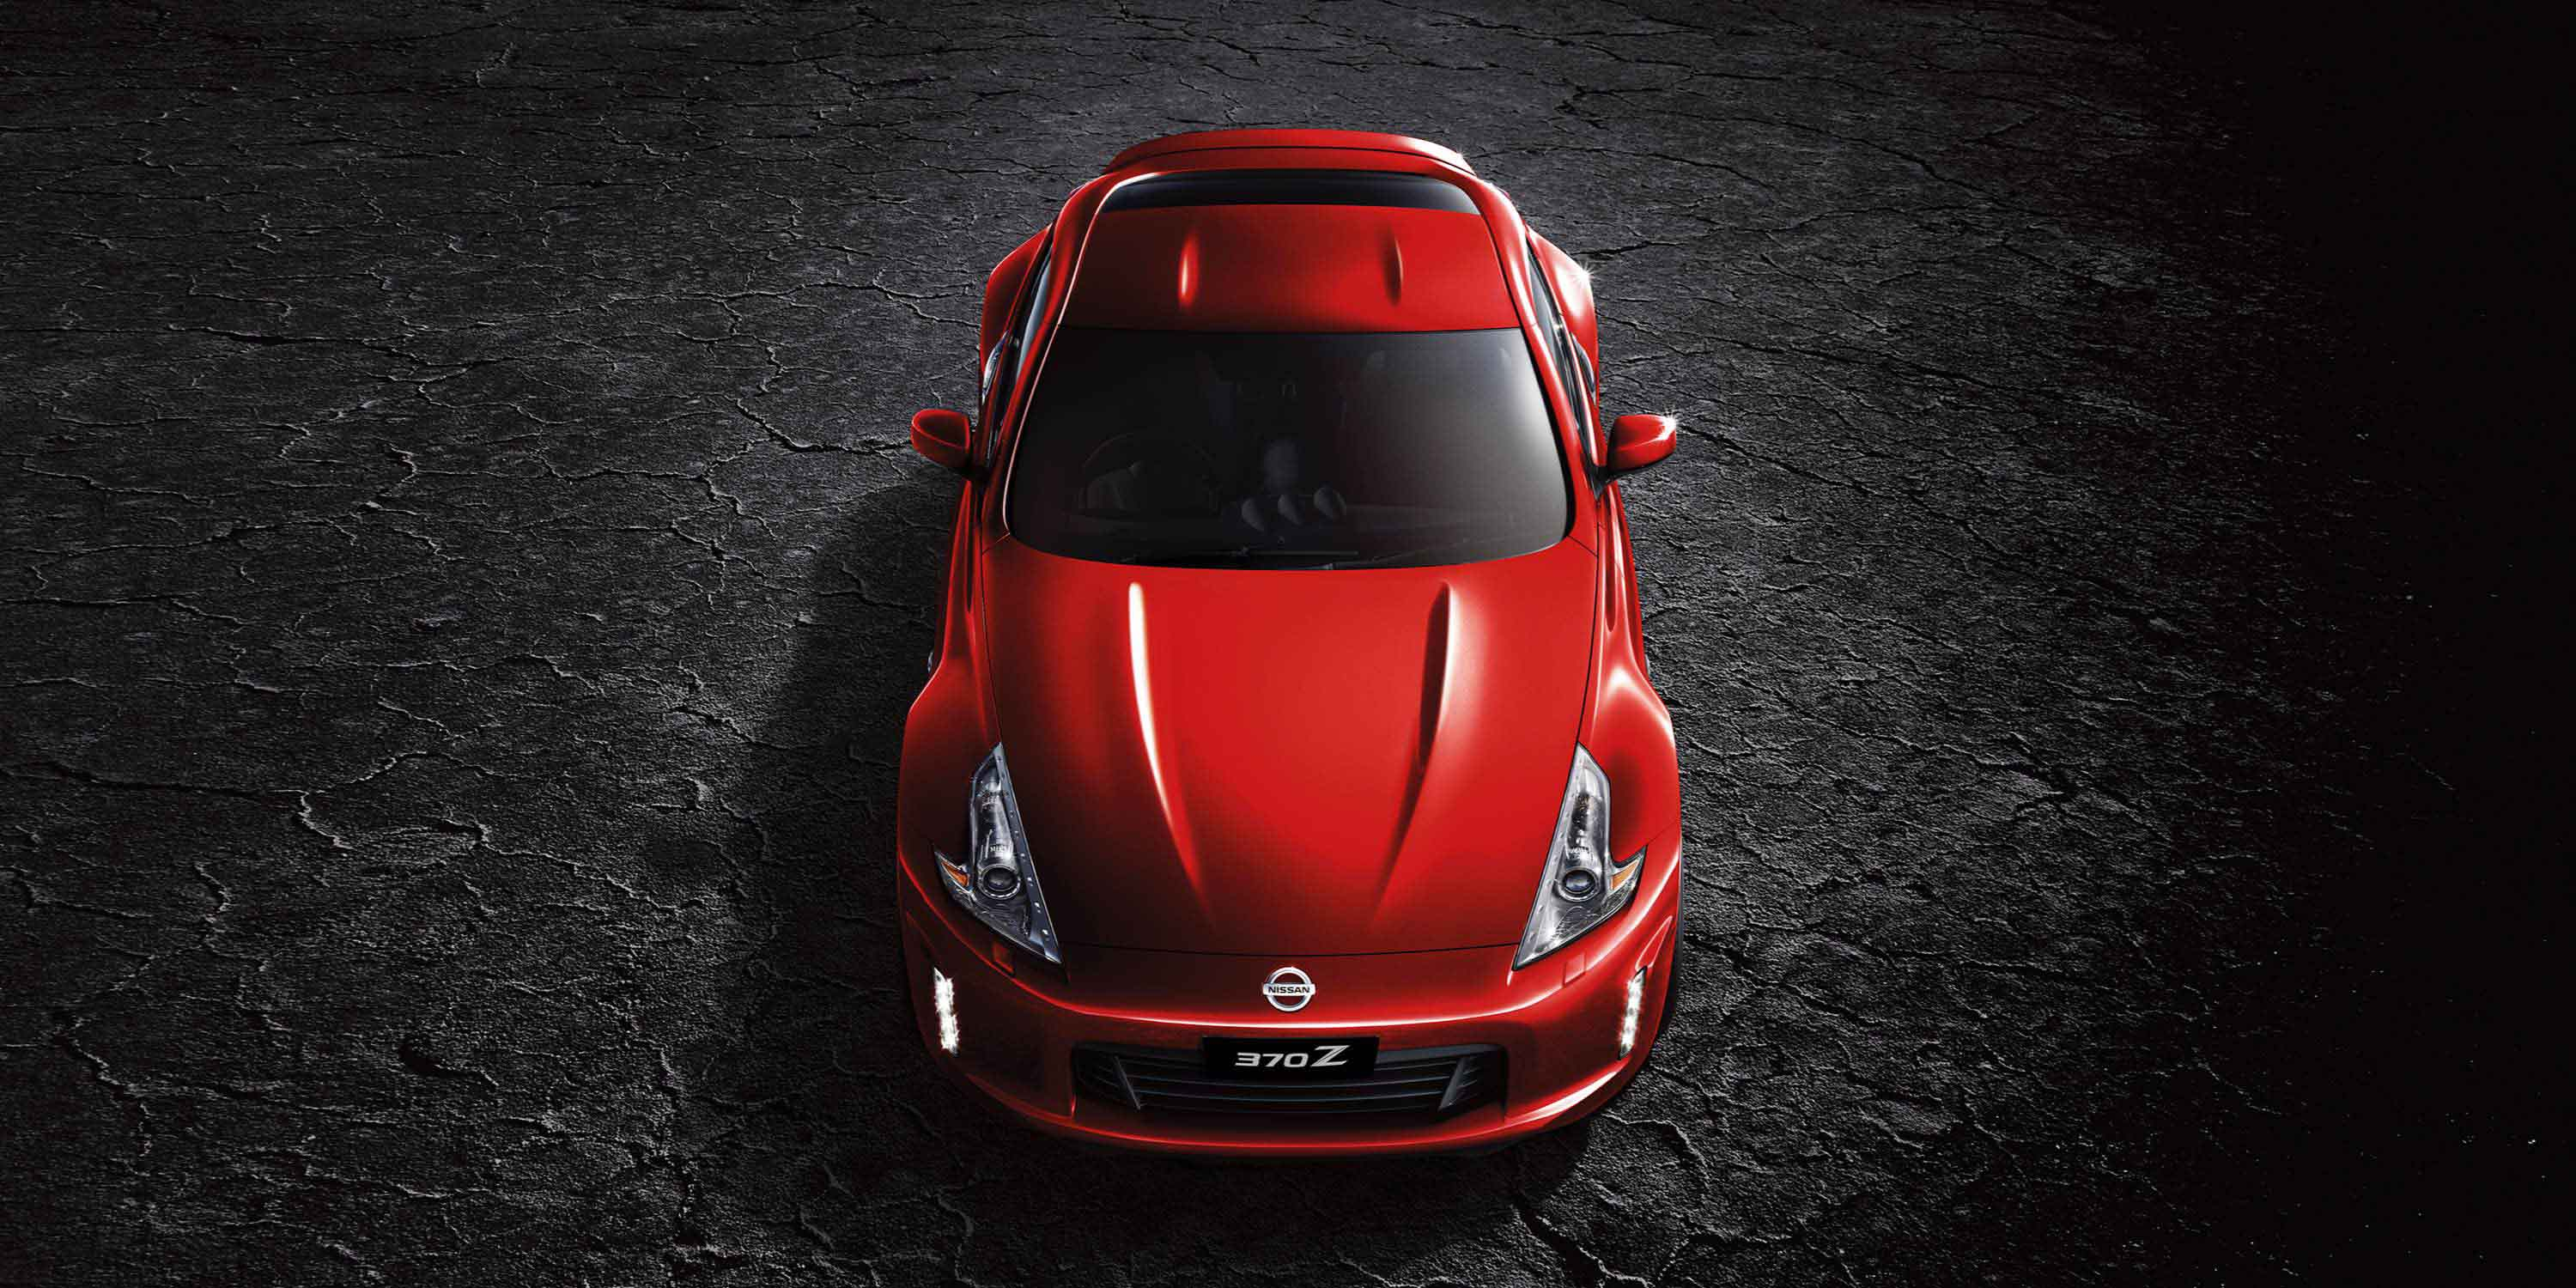 370z Performance Parts And Accessories Nissan Australia